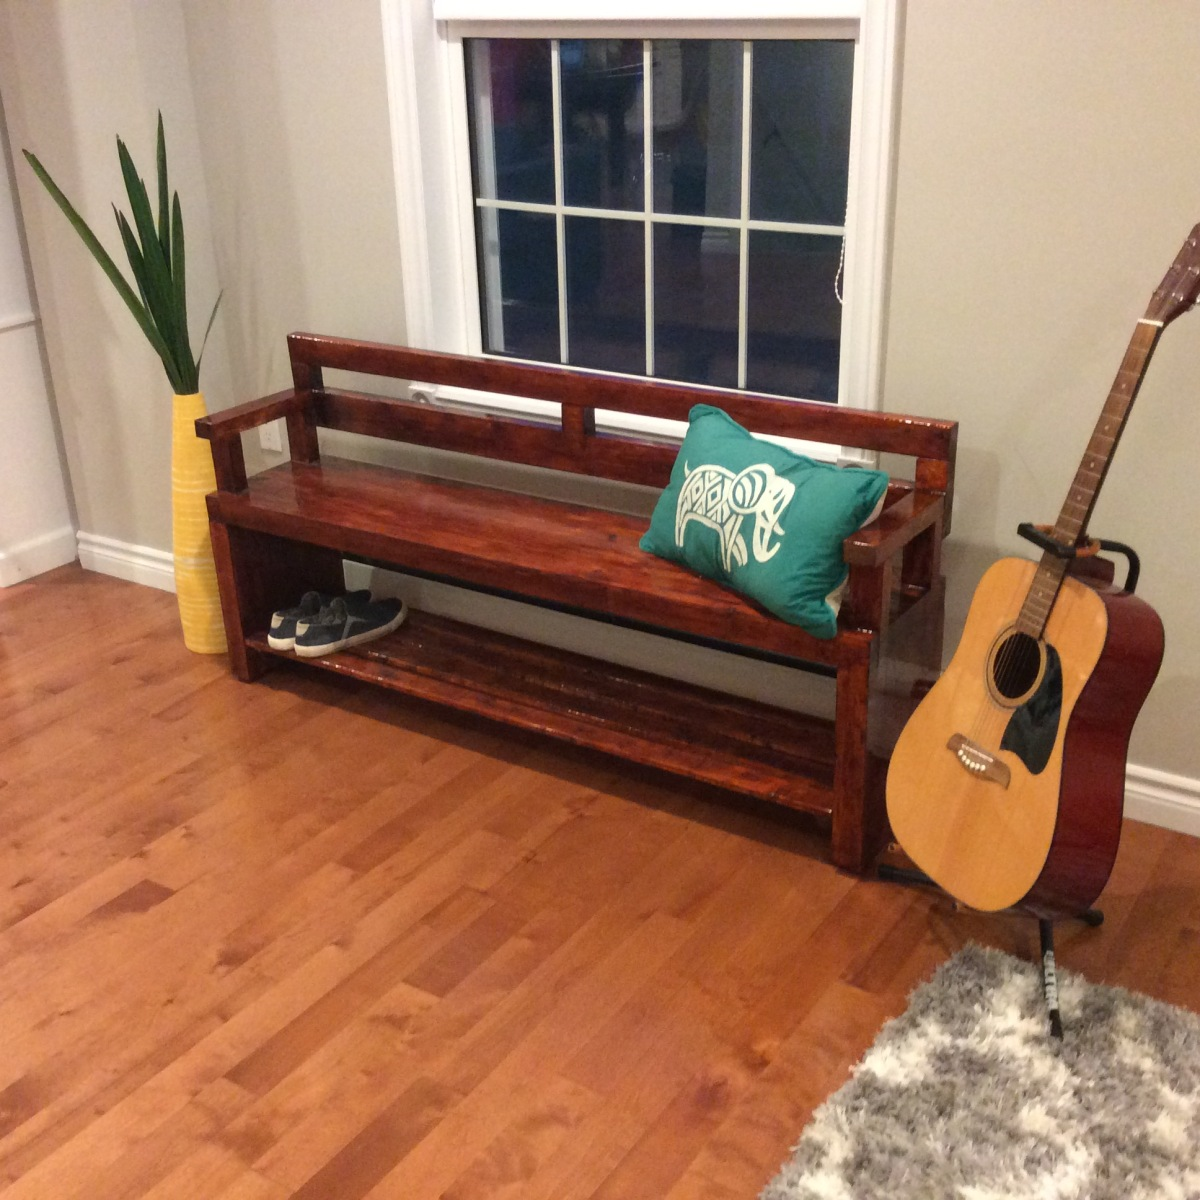 A bench oflessons